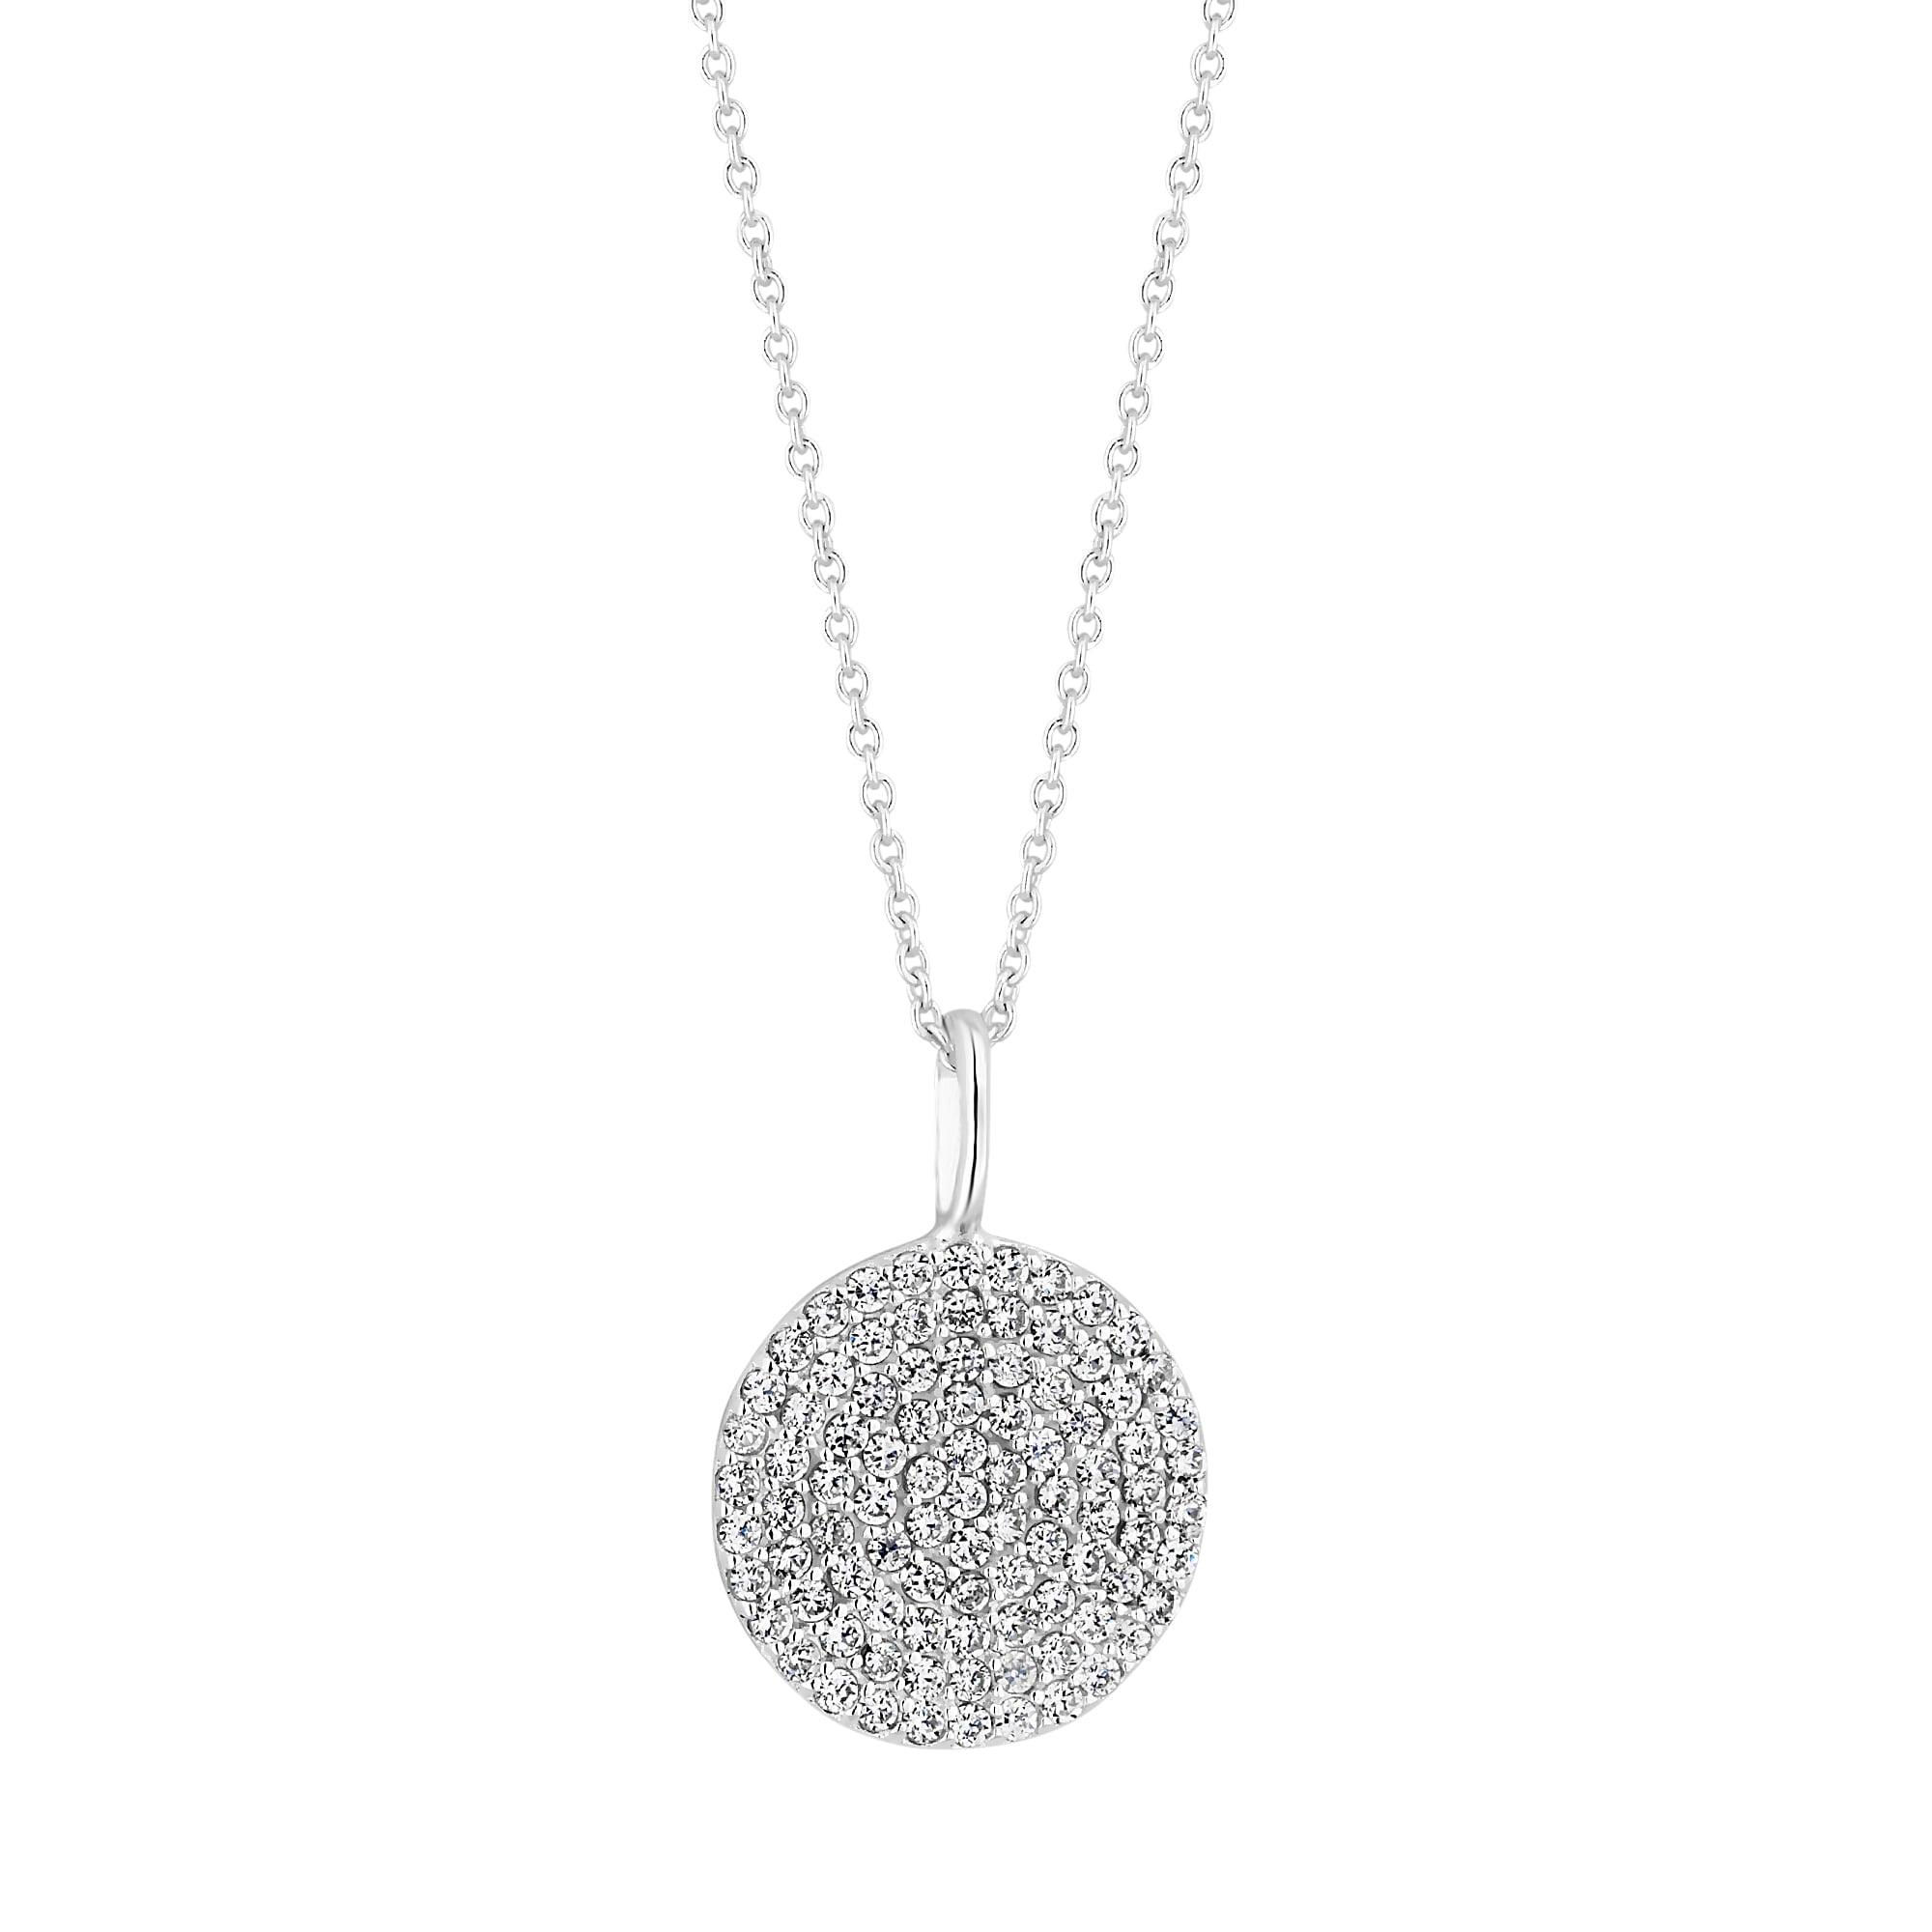 Simply silver sterling silver pave disc pendant necklace jewellery sterling silver pave disc pendant necklace mozeypictures Image collections